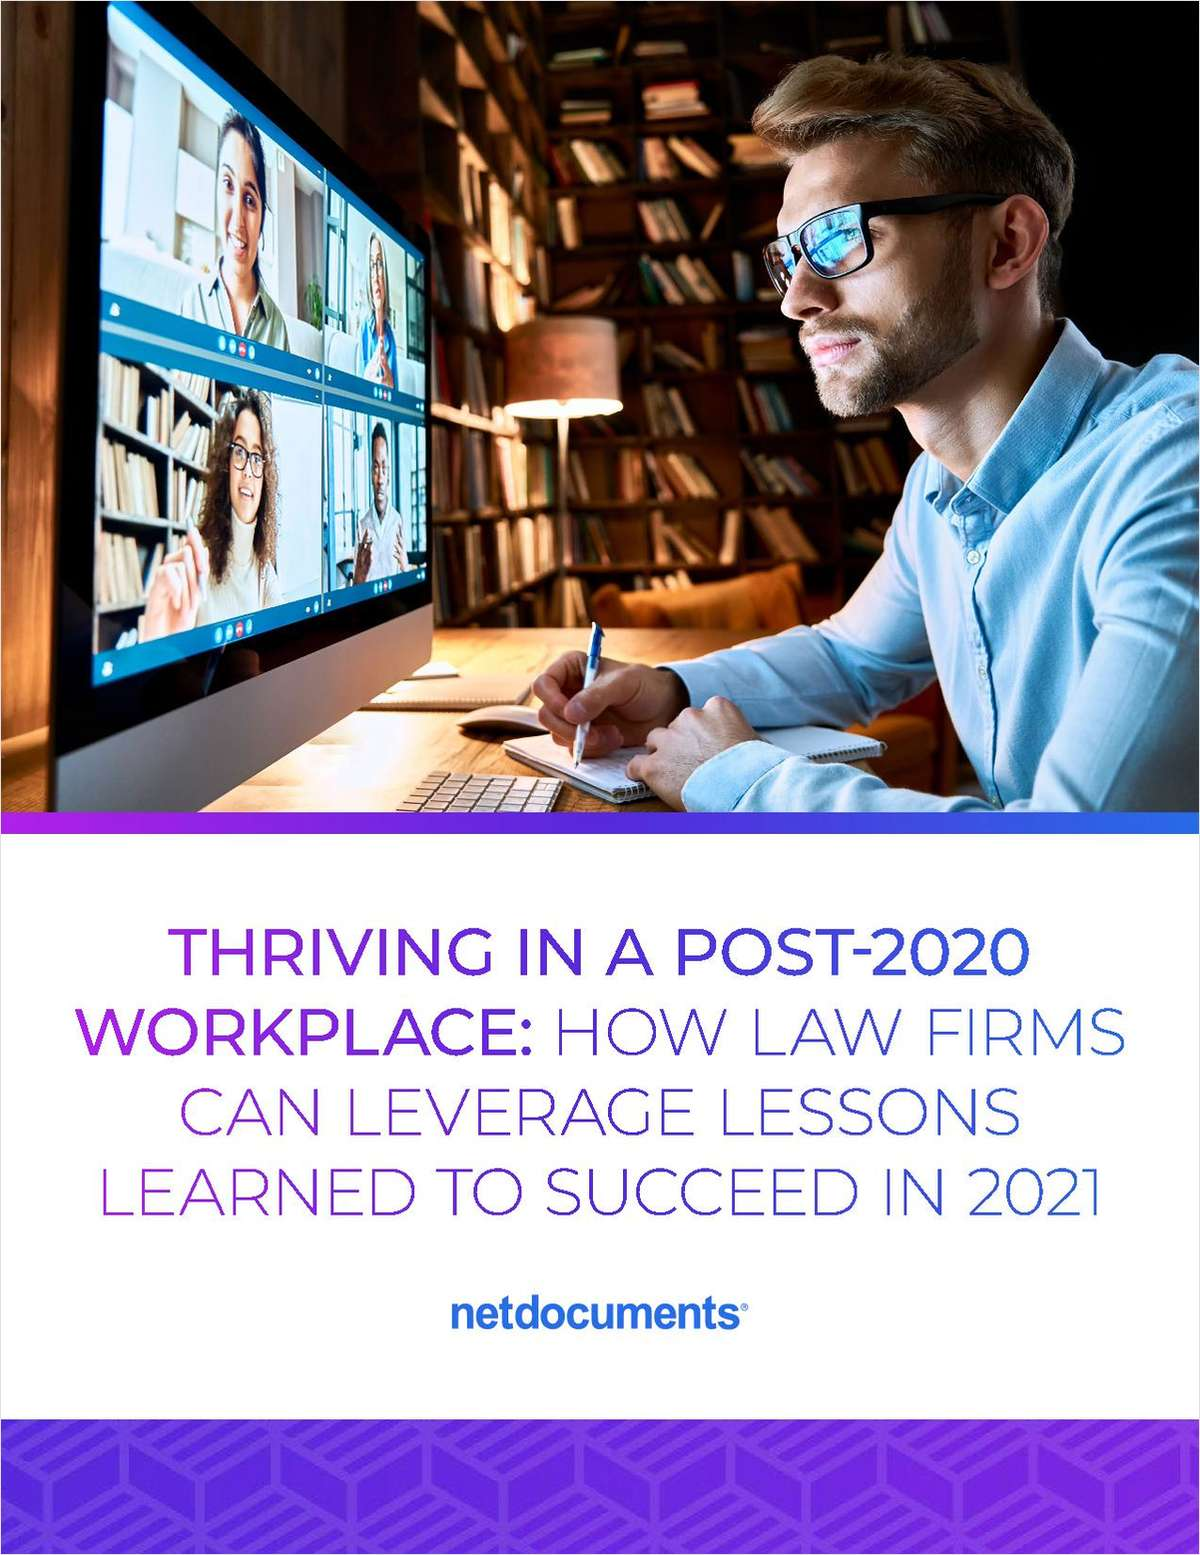 Thriving in a Post-2020 Workplace: How Law Firms Can Leverage Lessons Learned to Succeed in 2021